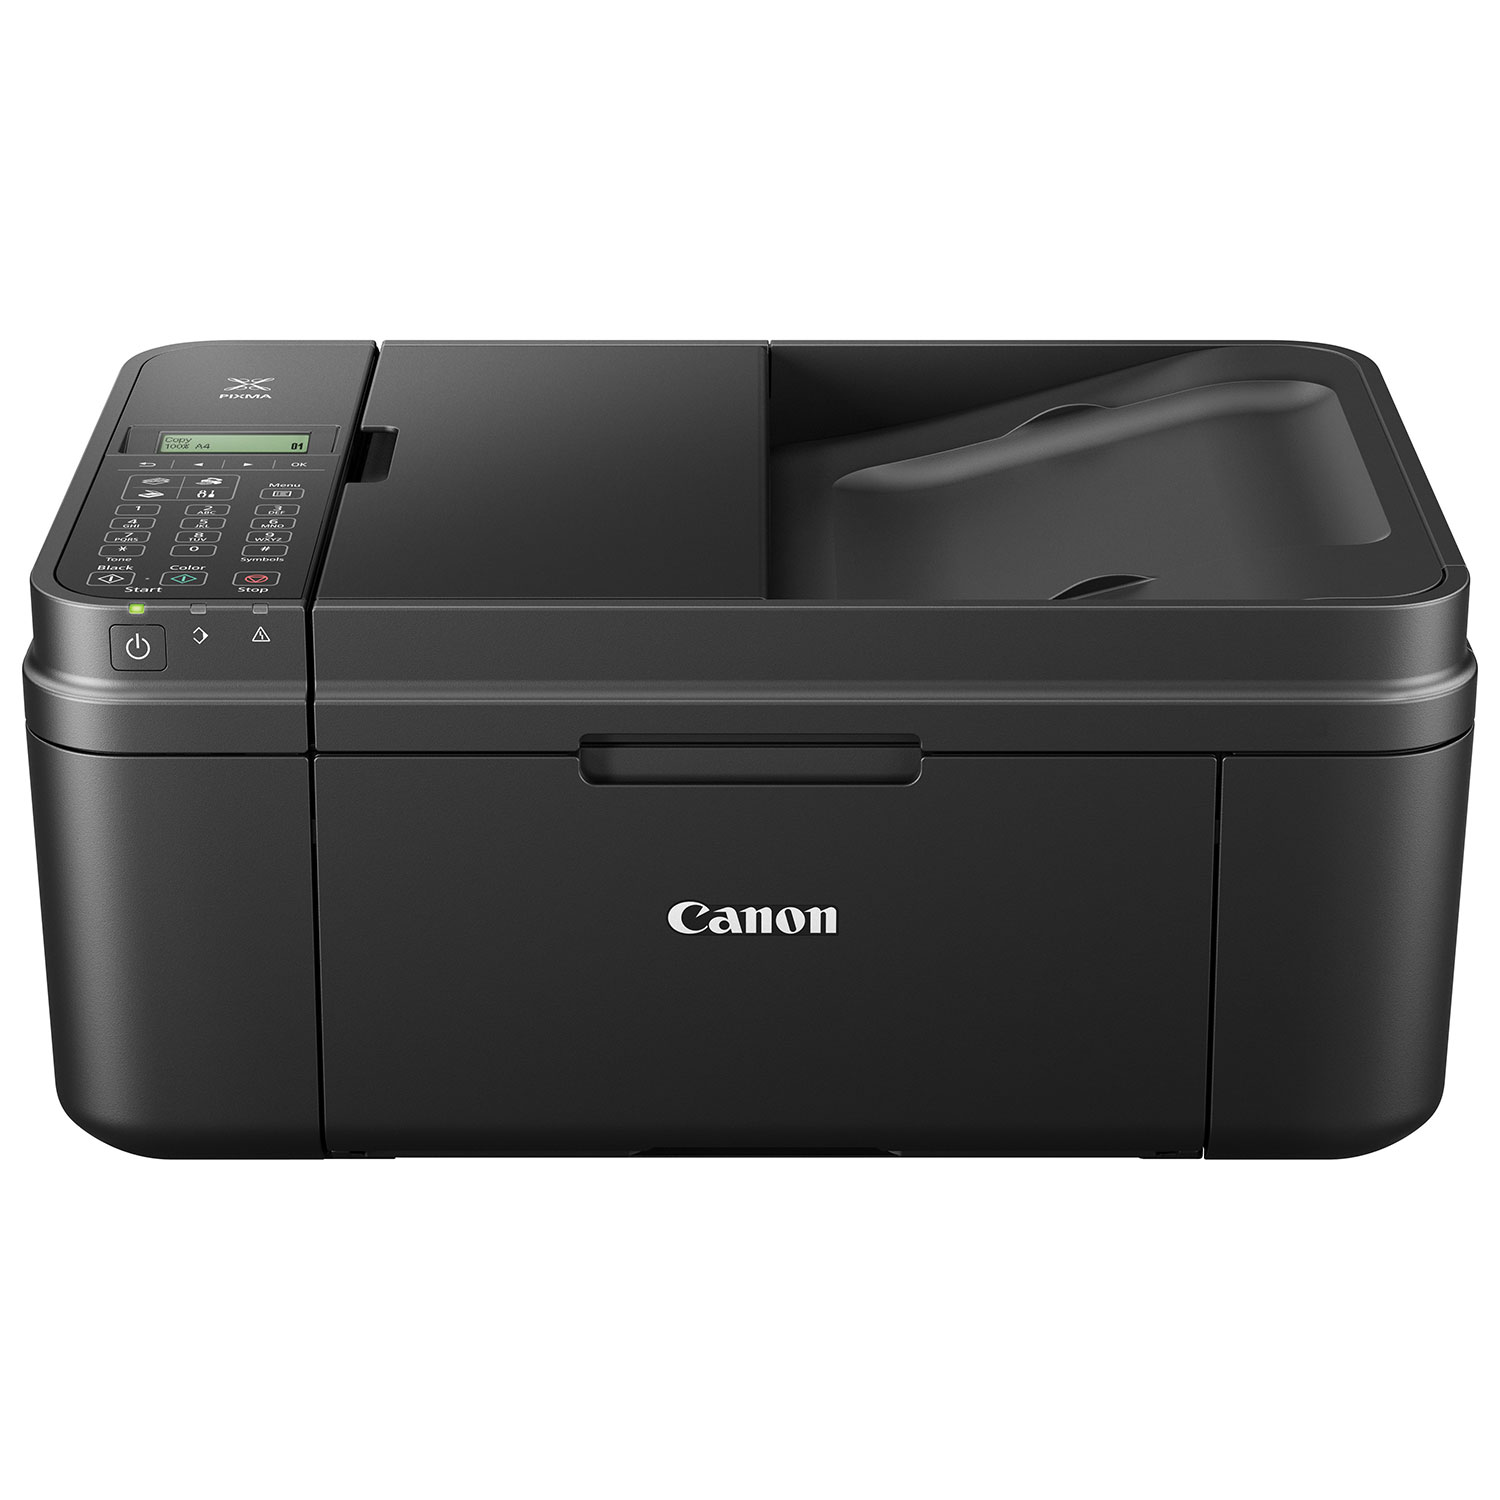 Canon Pixma Wireless All In One Inkjet Printer Mx492 Catridge Pg 47 Black Original 100 Printers Best Buy Canada